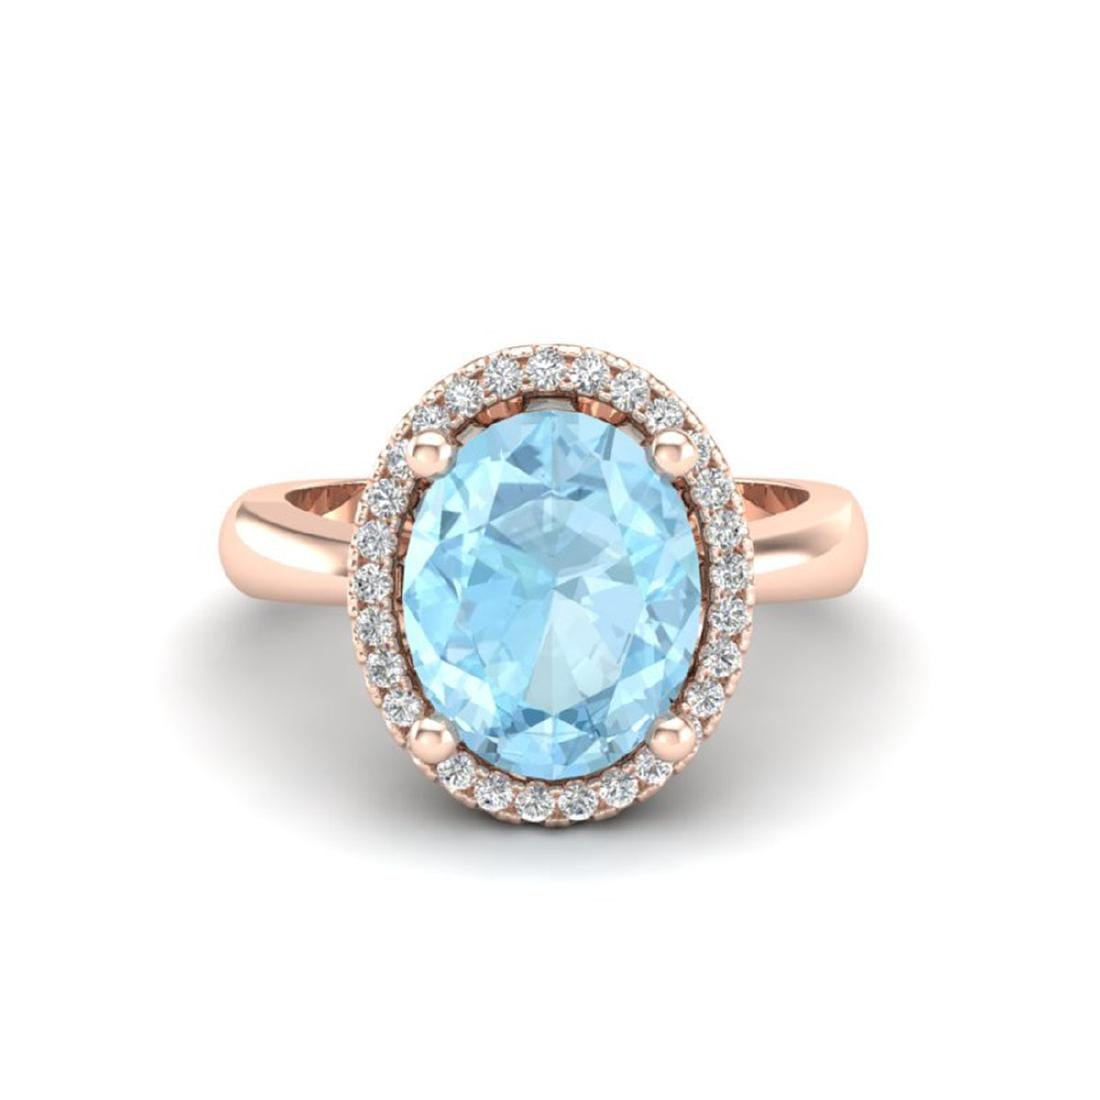 2.50 CTW Aquamarine & Micro Pave VS/SI Diamond Ring